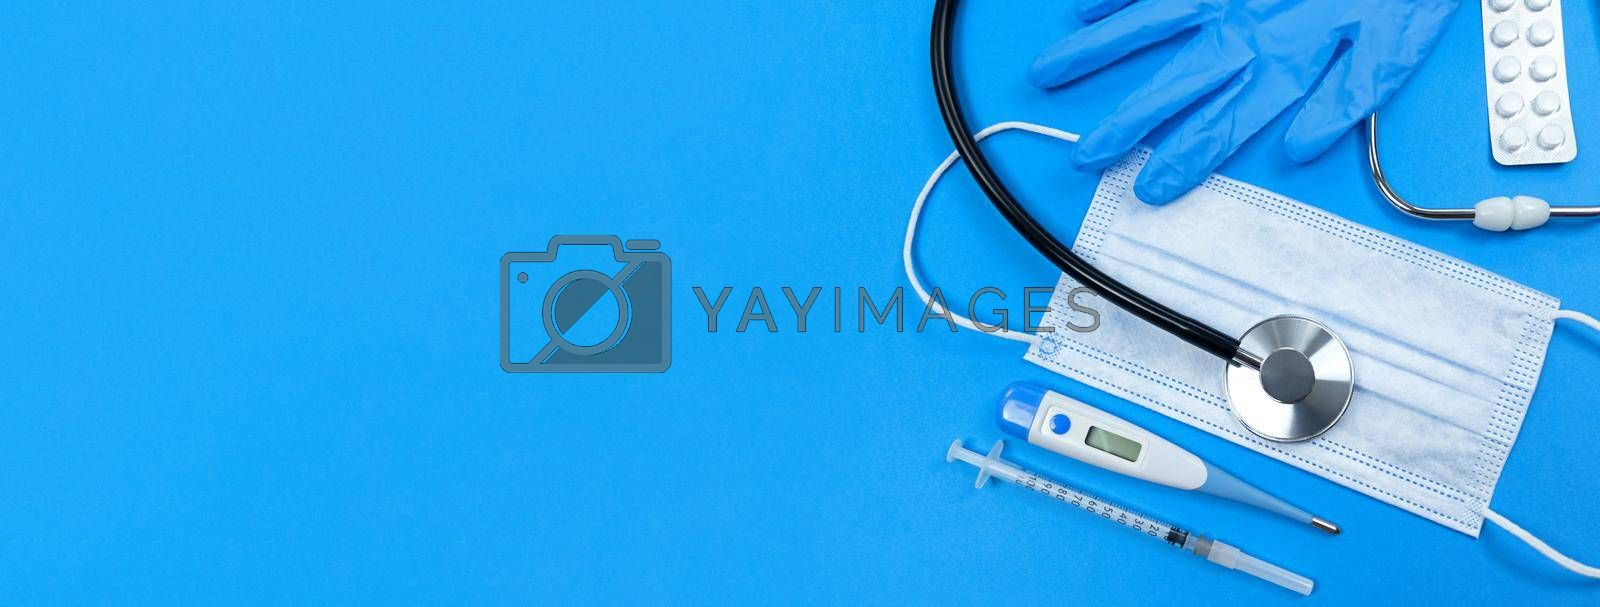 Stethoscope, face mask, medical syringe, thermometer, pills blister and medical gloves on a blue background. Flat lay banner with copy space.